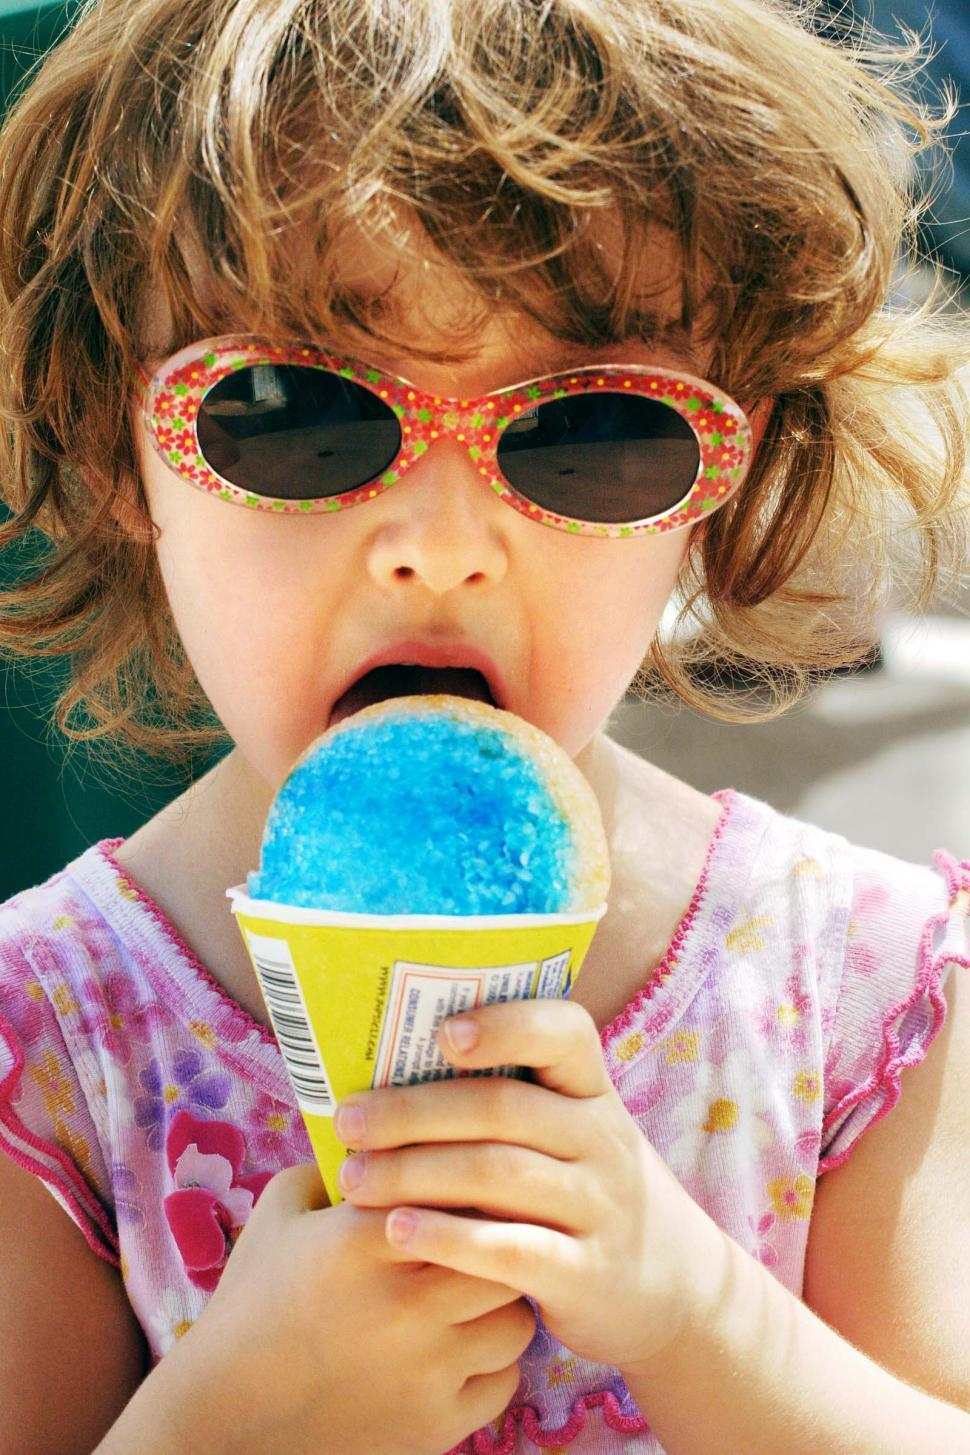 Download Free Stock HD Photo of Child eats snow cone Online